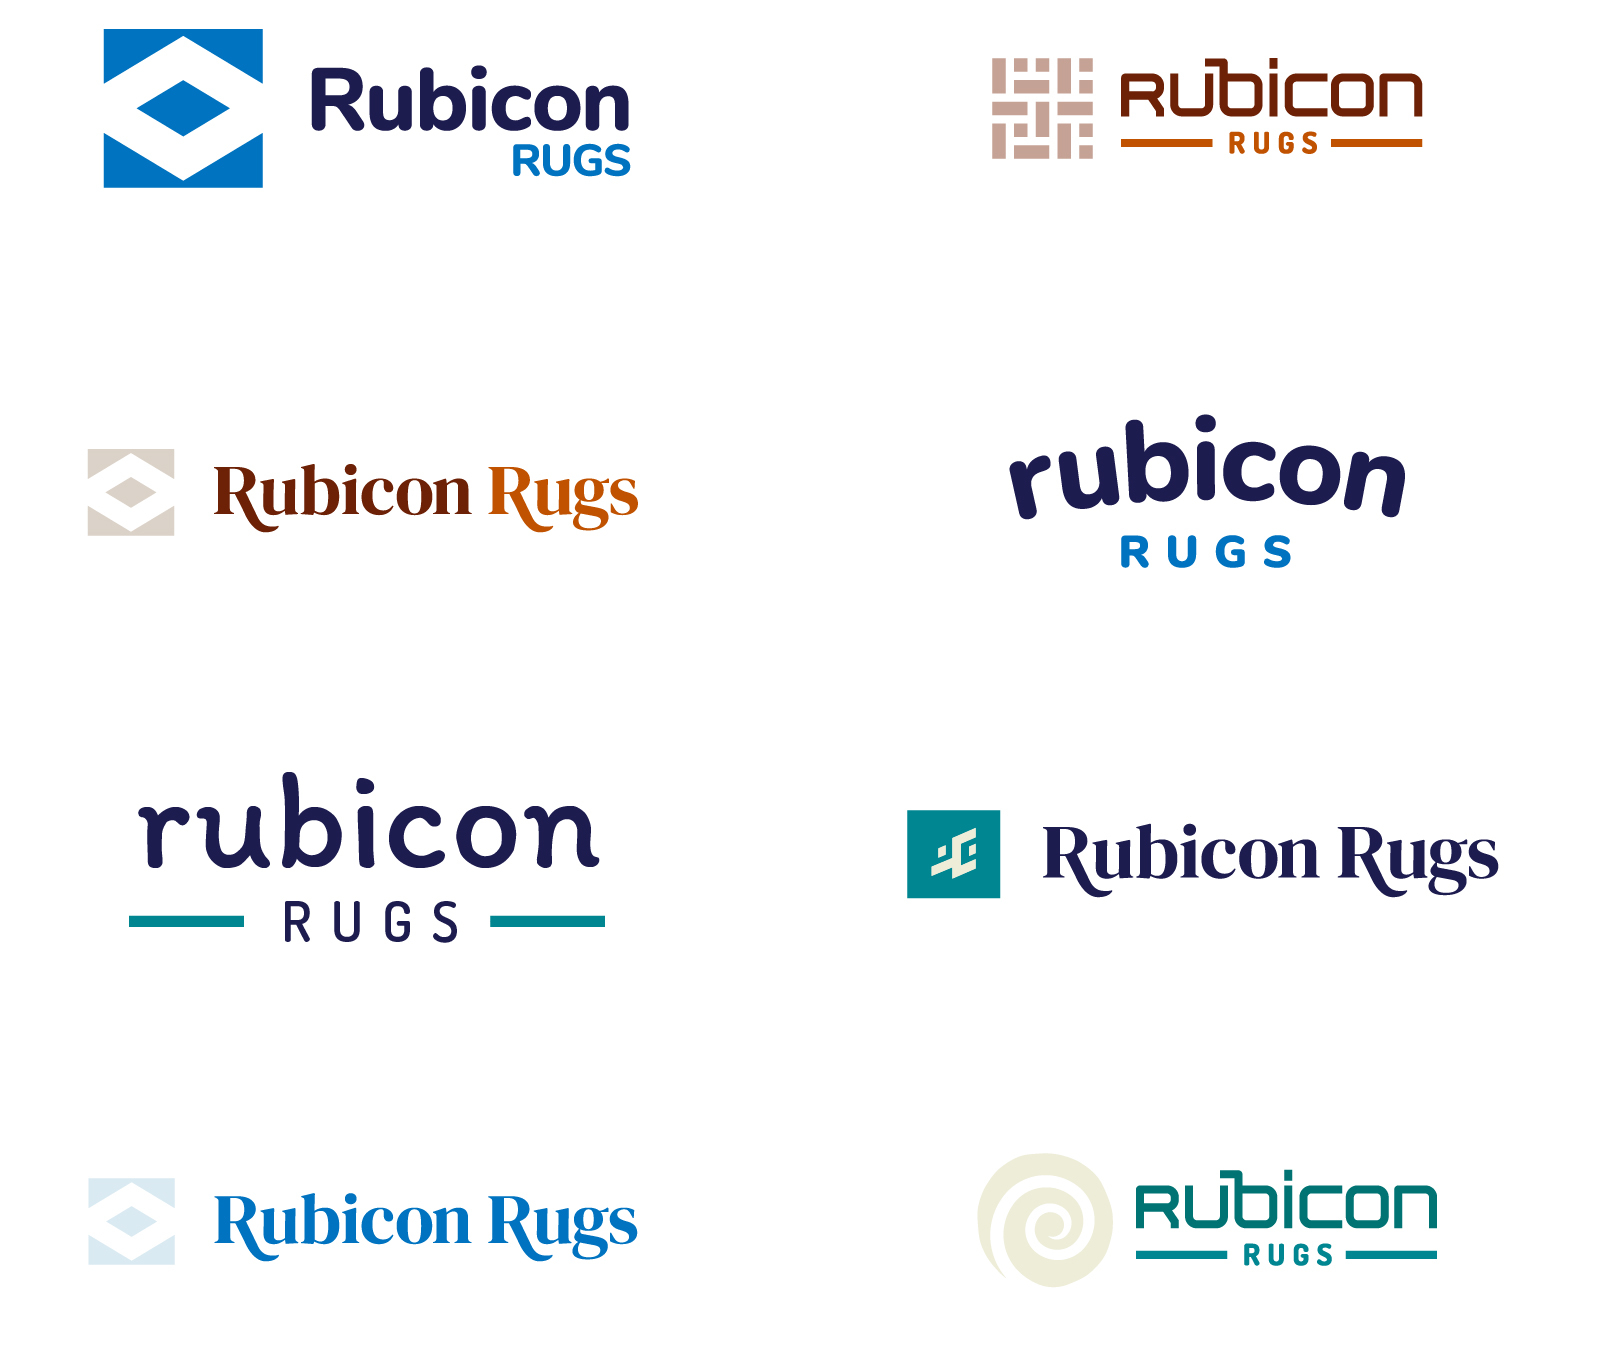 Rubicon Rugs Logo Options in Colors